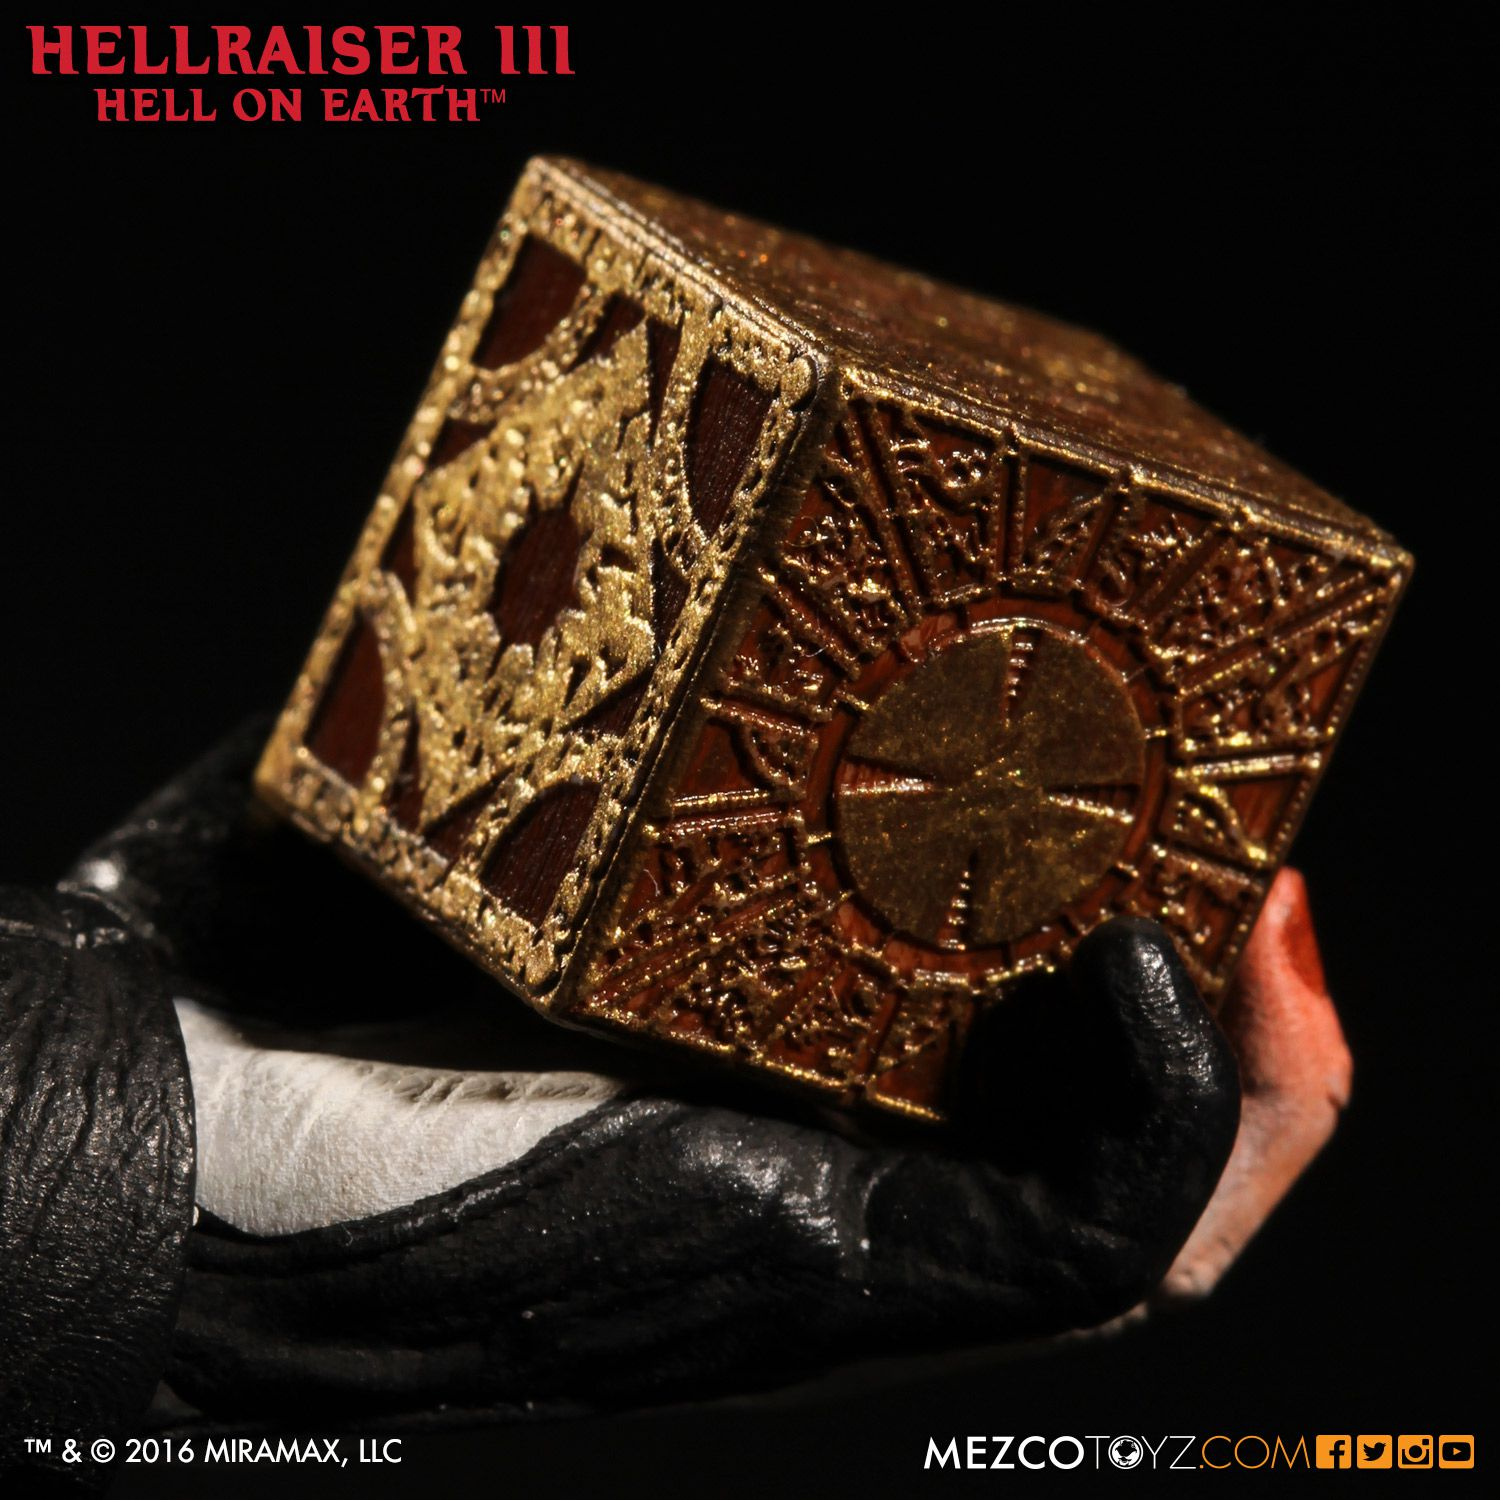 Hellraiser iii hell on earth klaxxon subtitulos